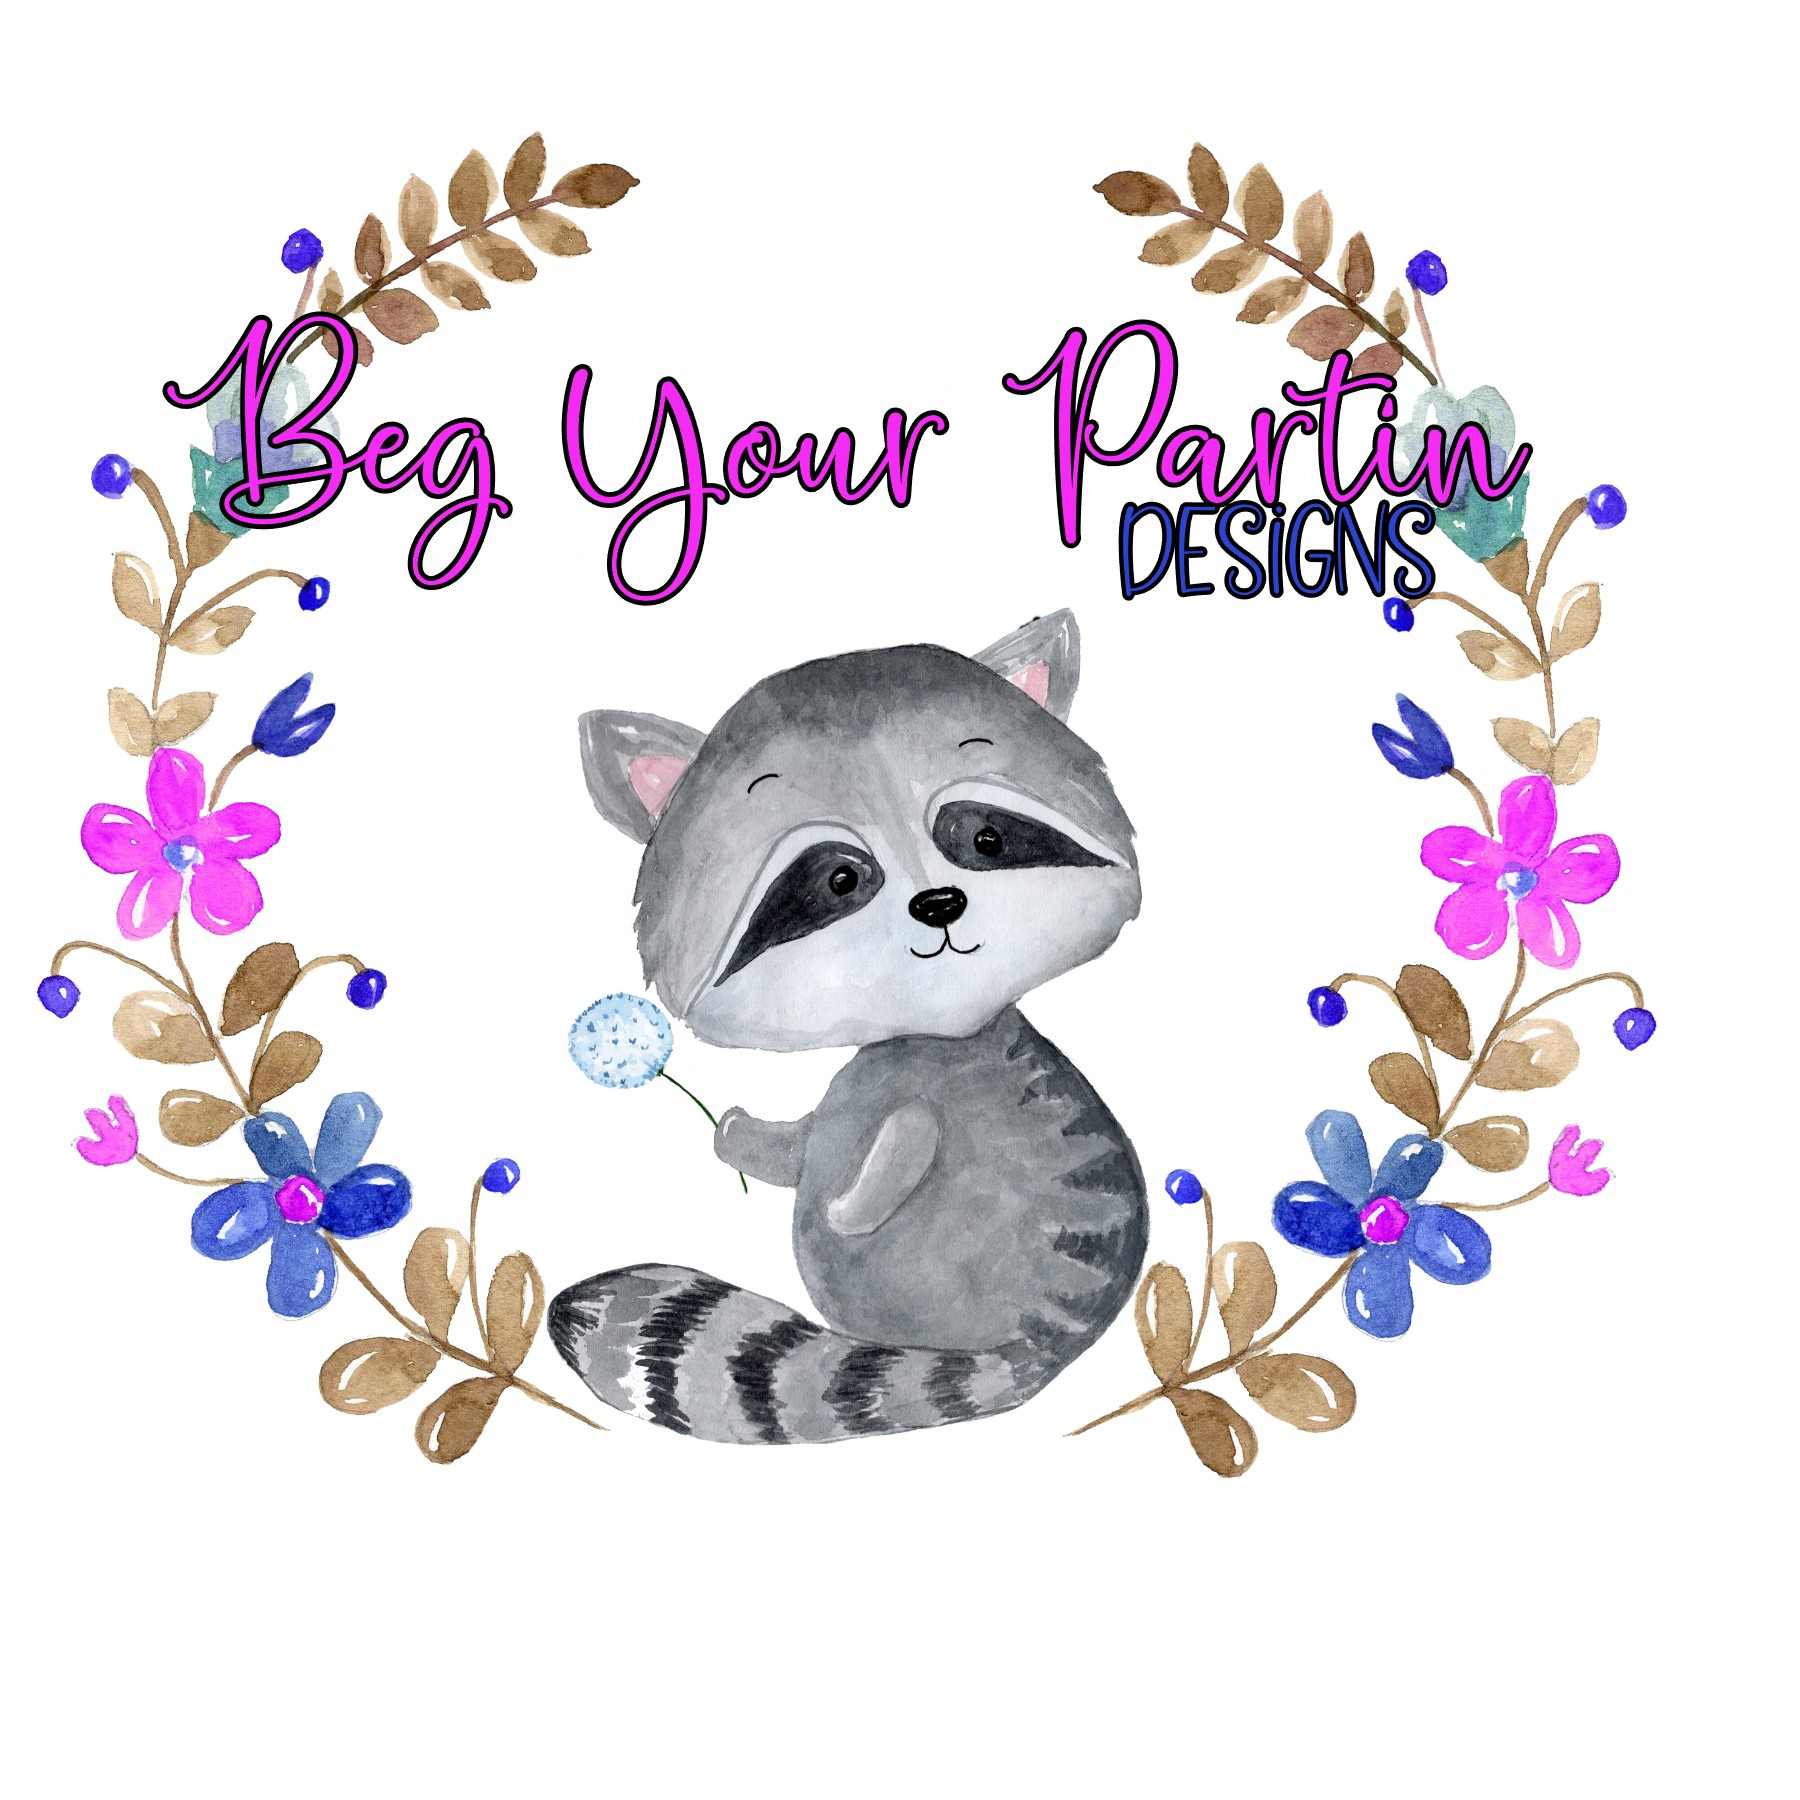 Beg Your Partin Designs's profile picture